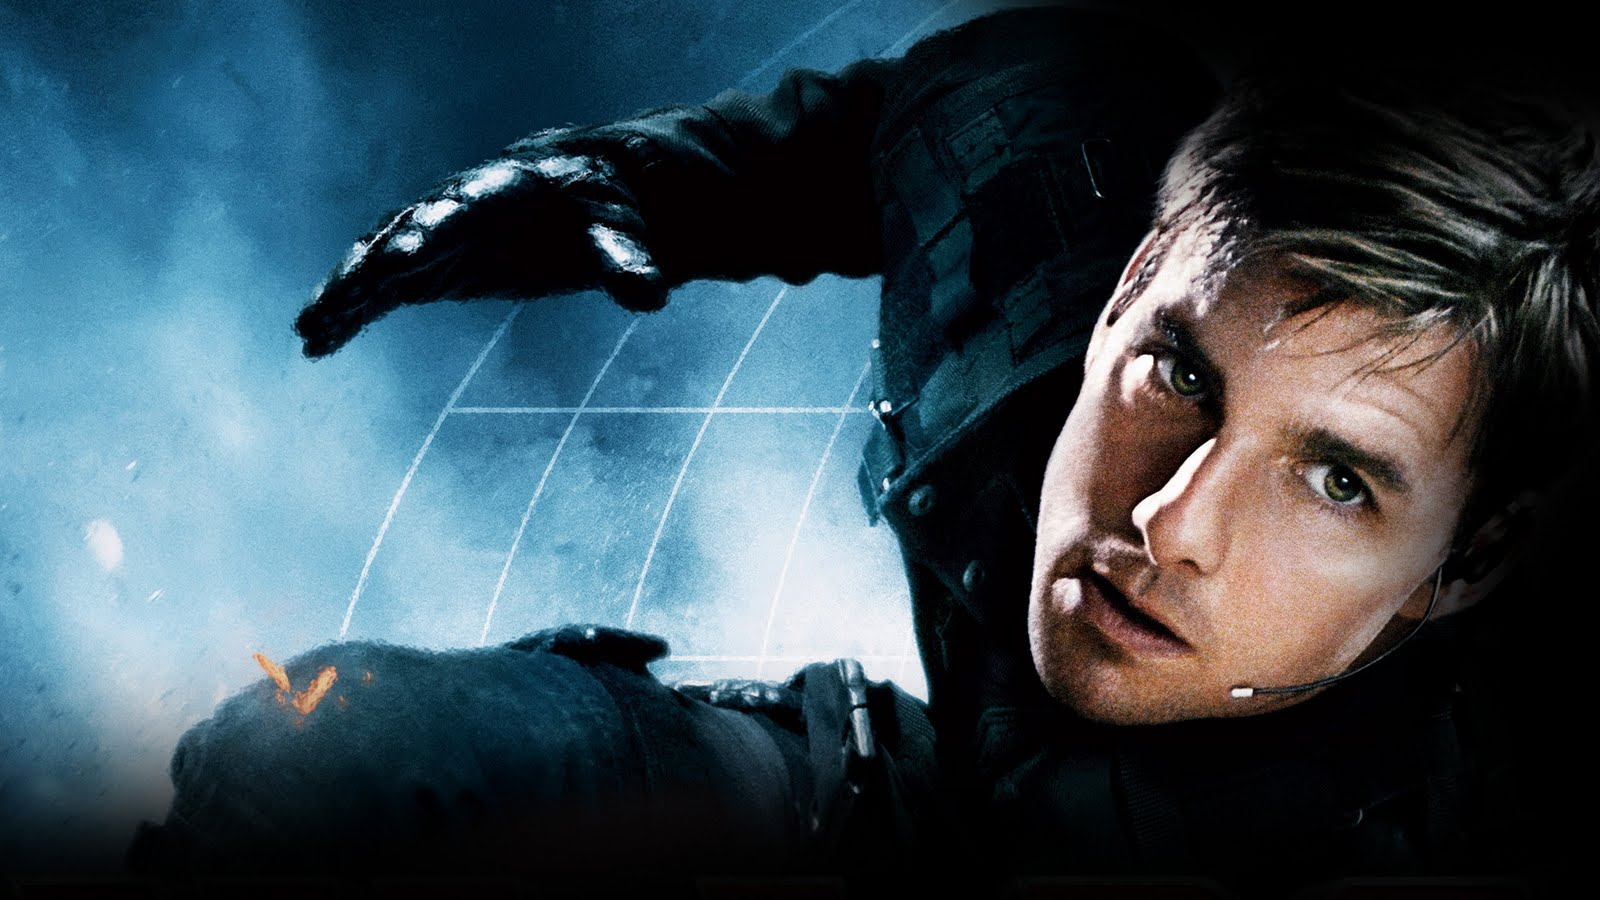 Tom Cruise Mission Impossible 4Tom Cruise Mission Impossible 4 Hairstyle